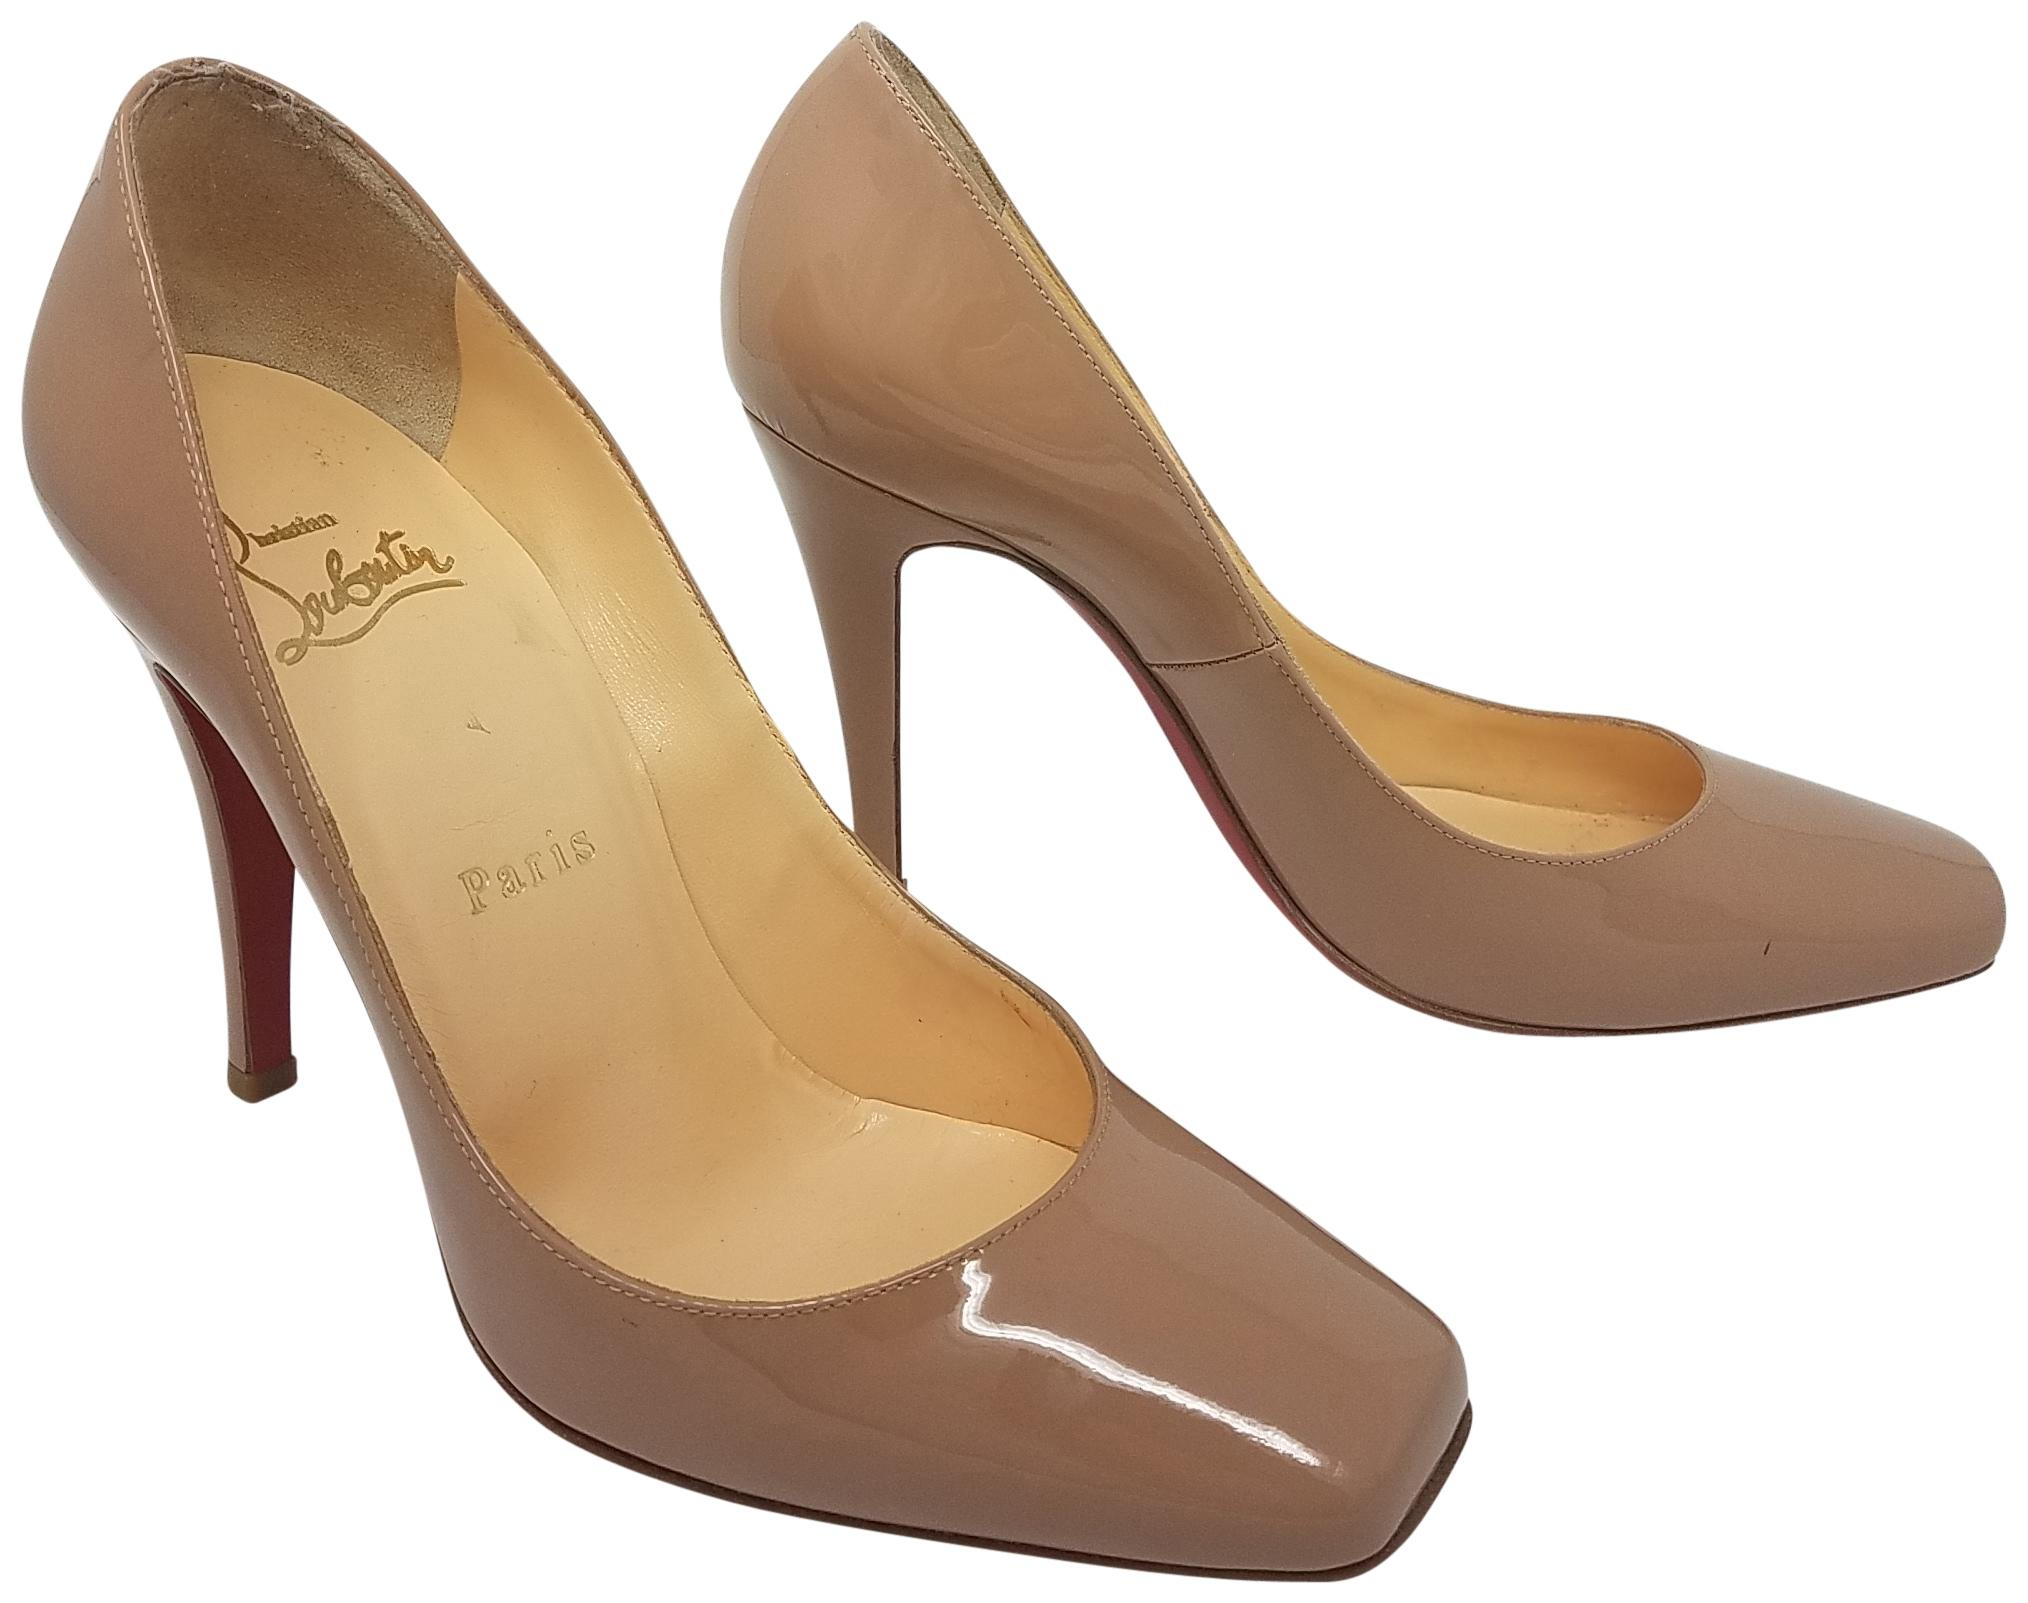 Christian Louboutin Leather Square-Toe Pumps cheap online store Manchester 1uitlW